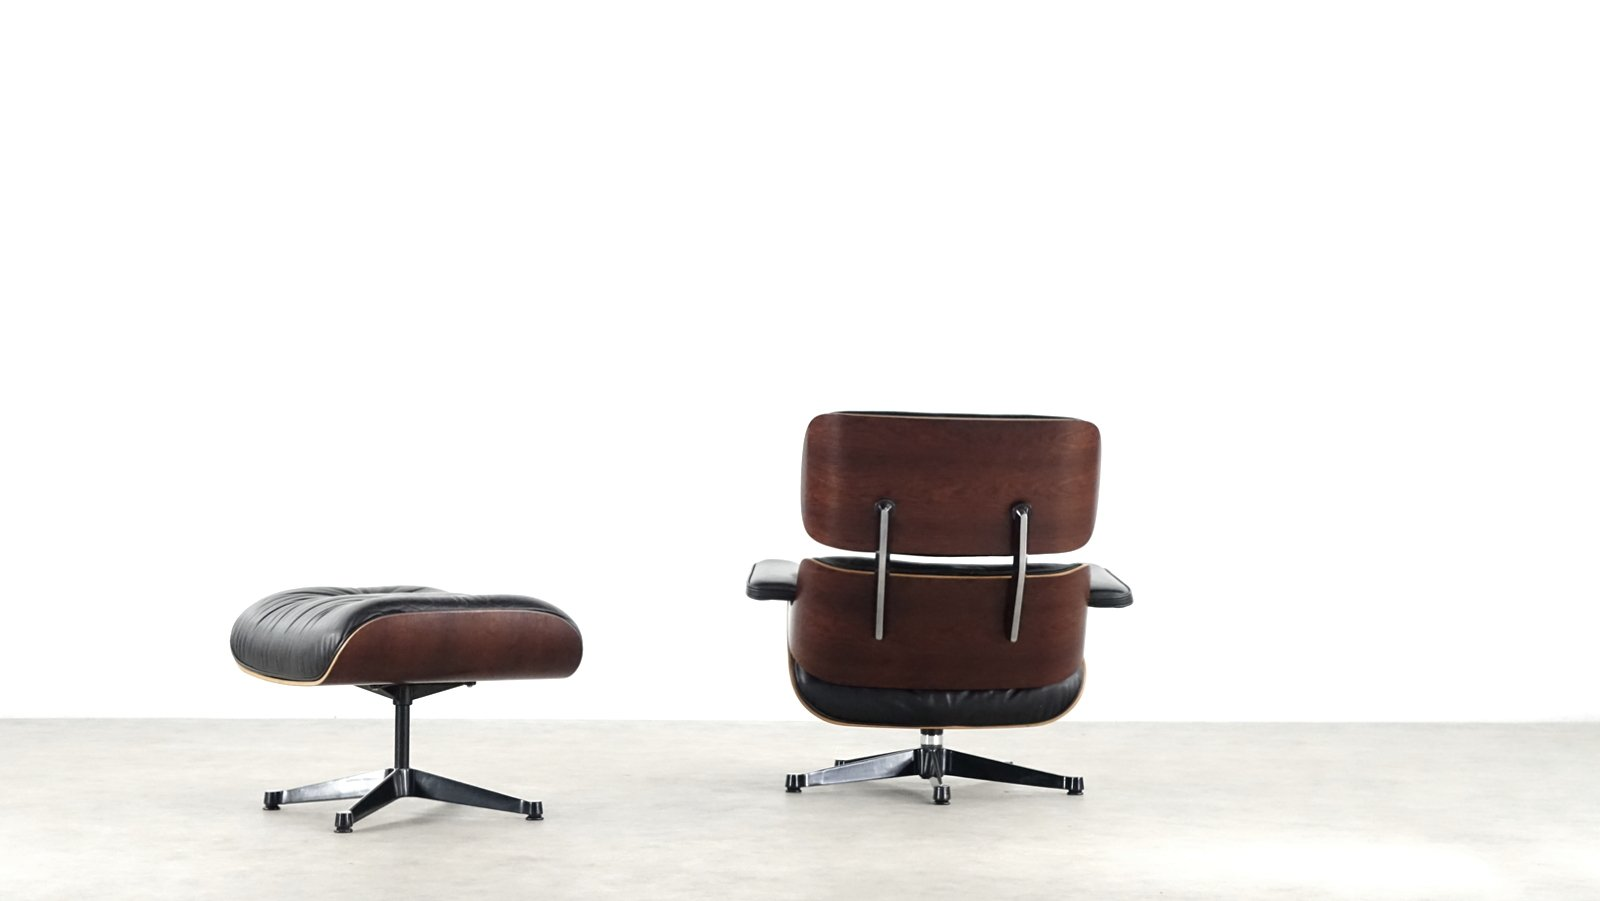 eames lounge chair ottoman by charles ray eames for. Black Bedroom Furniture Sets. Home Design Ideas